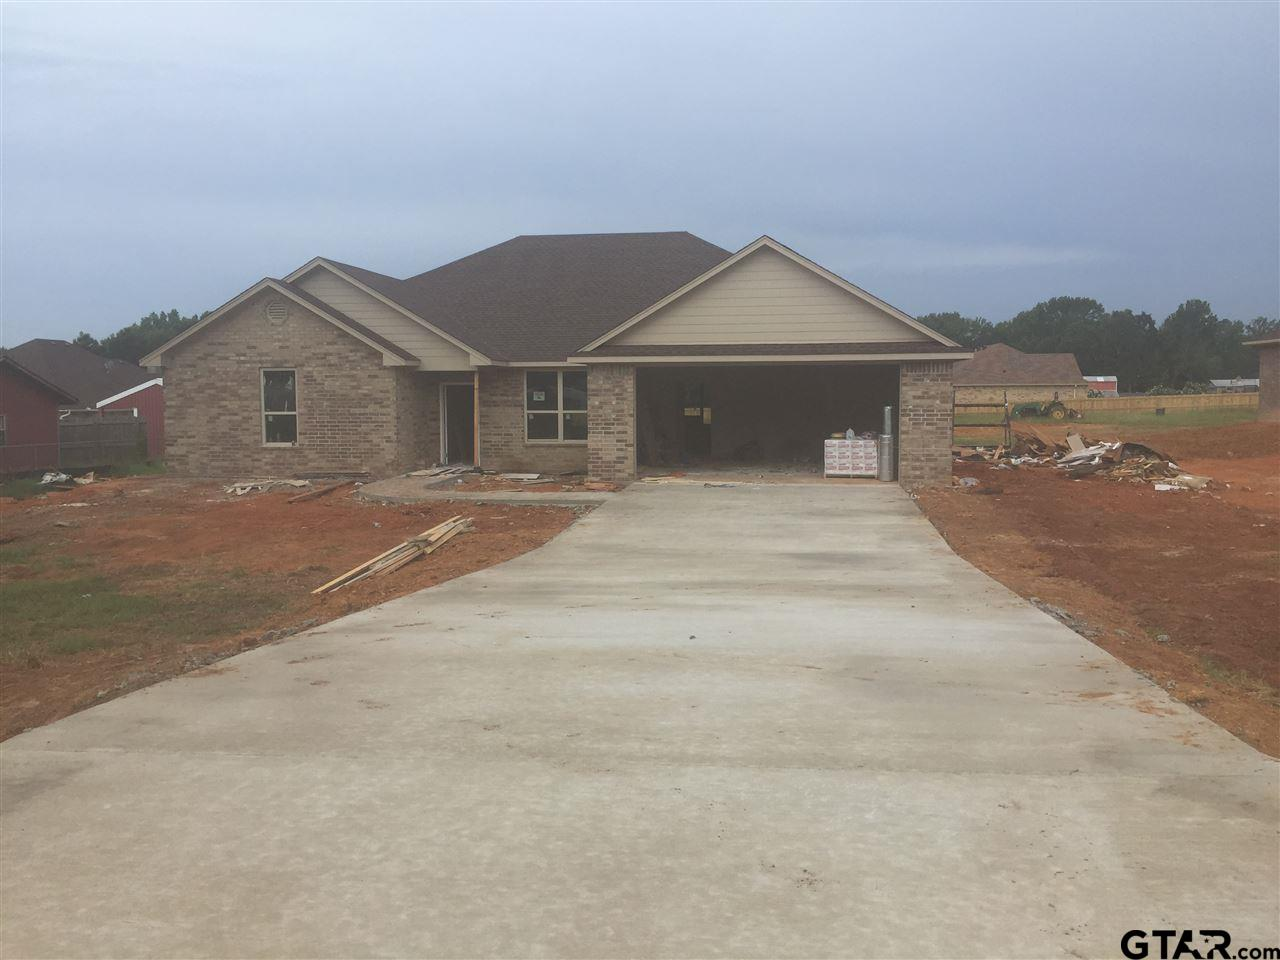 17692 CR 2195 (MAJI ROAD), Whitehouse, TX 75791